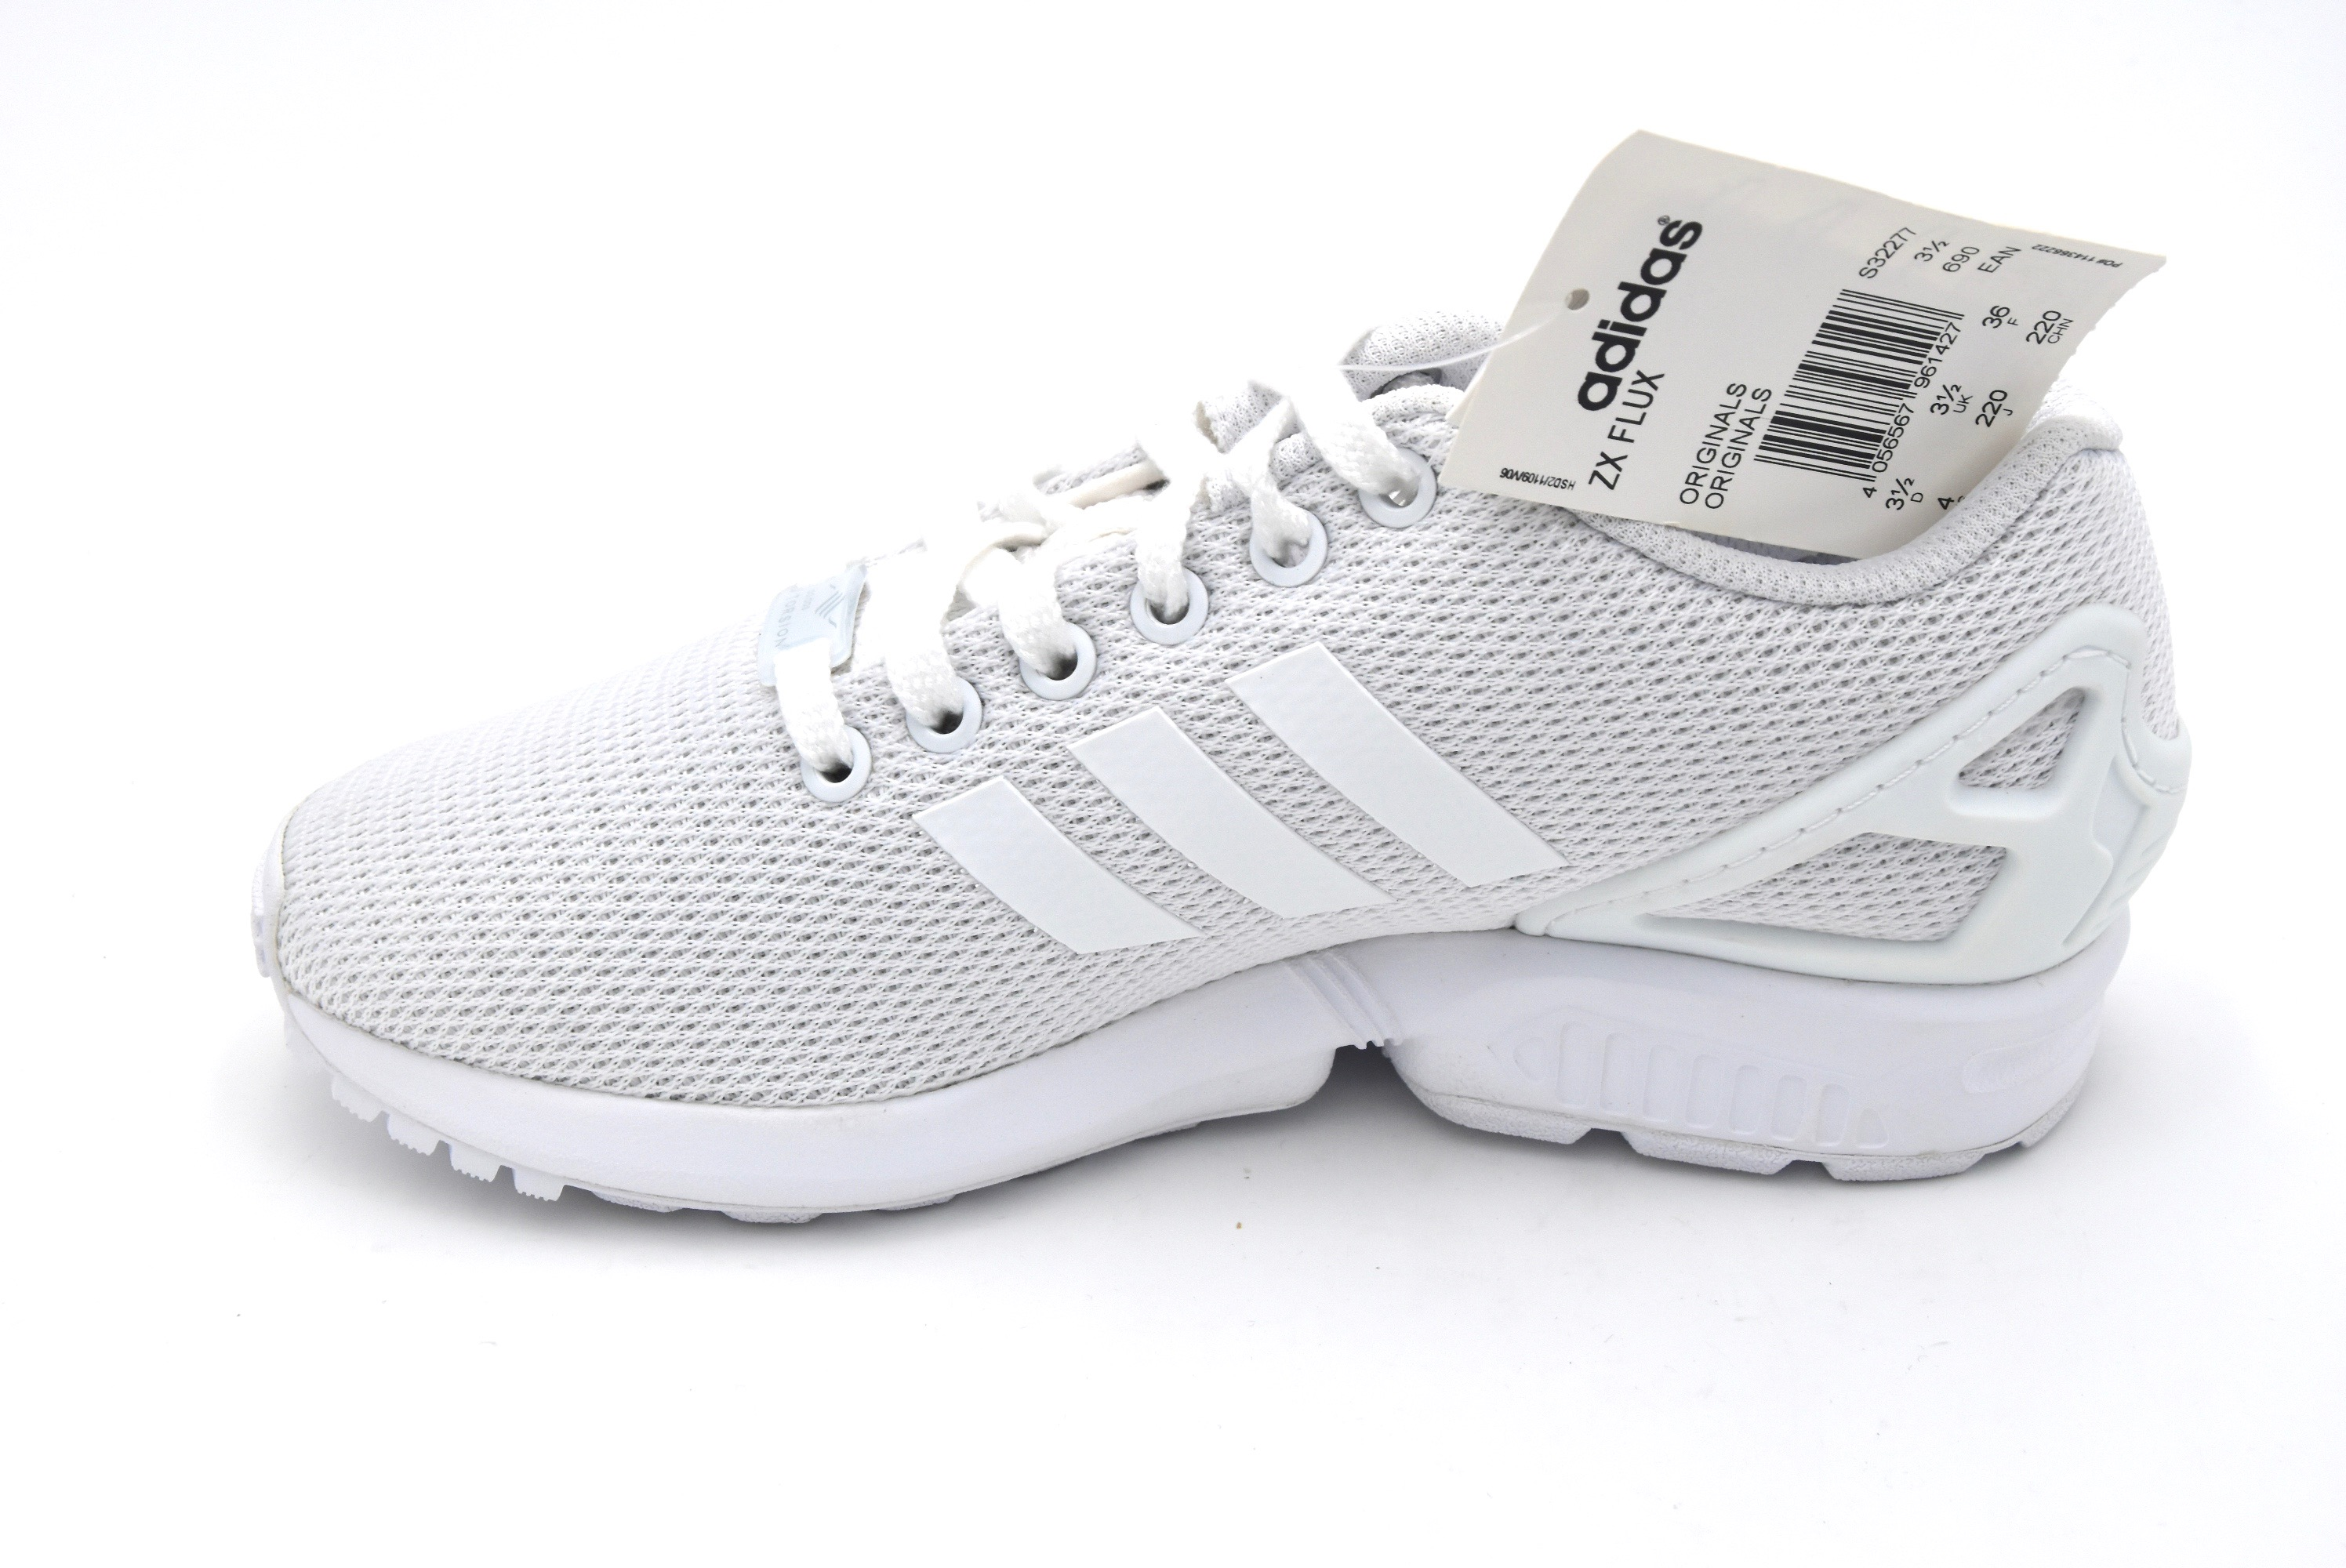 uk availability b25c8 0e7c6 ADIDAS WOMAN SPORTS SNEAKER SHOES SYNTHETIC CODE S32277 - S32279 ZX FLUX